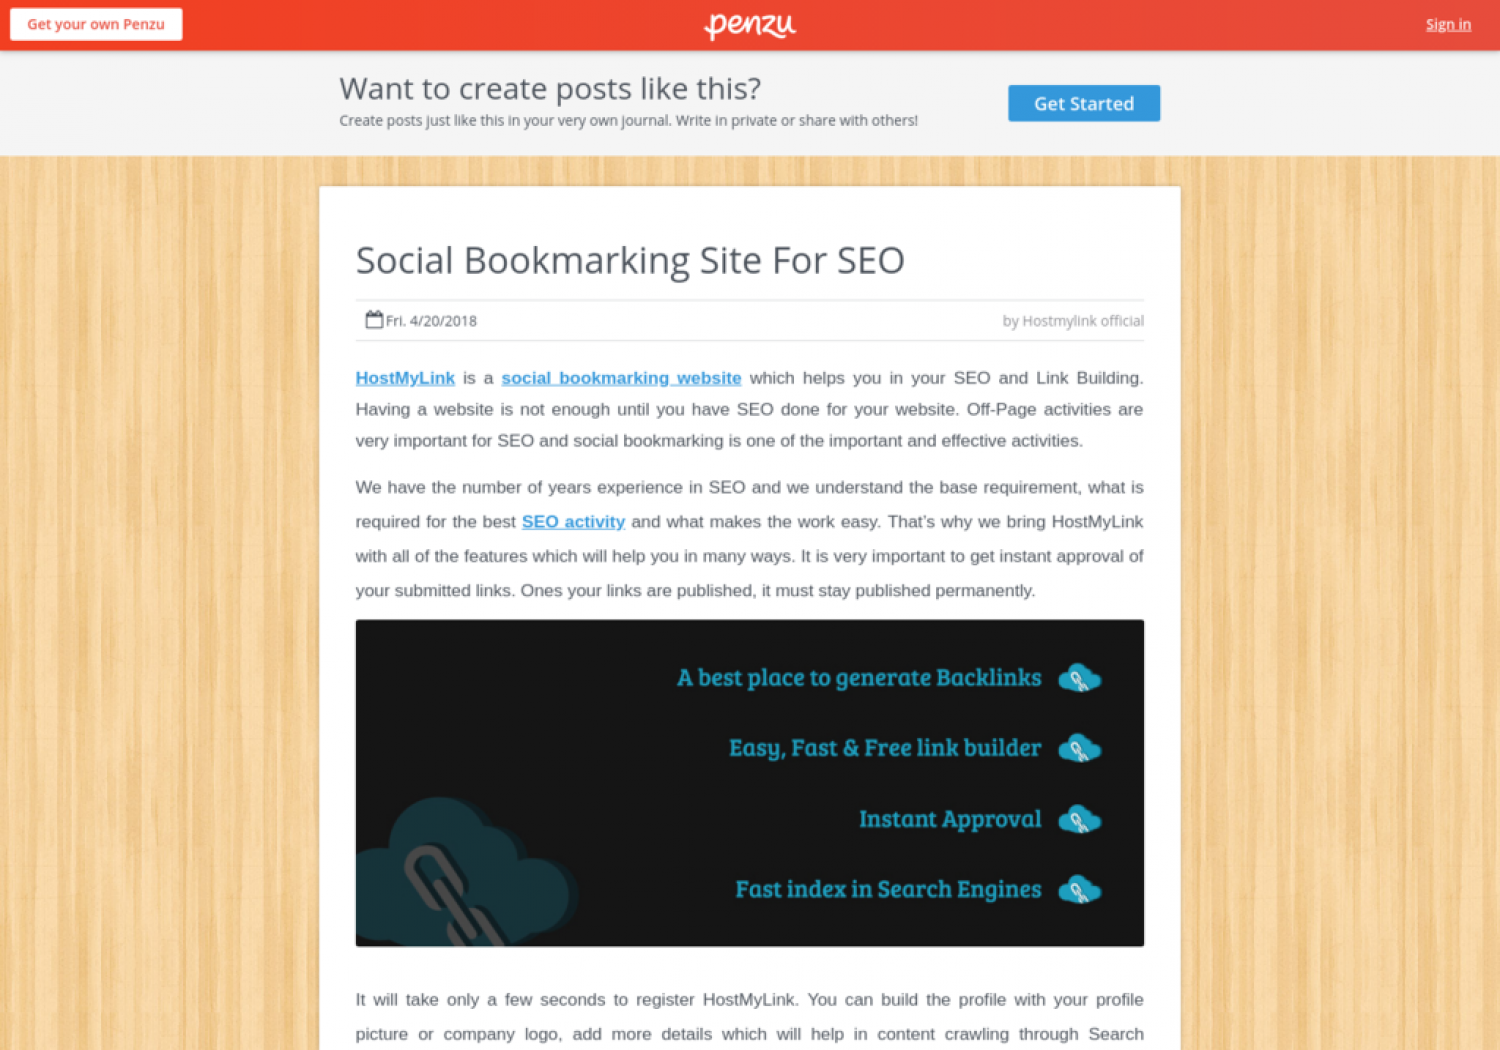 Social Bookmarking Site For SEO Infographic